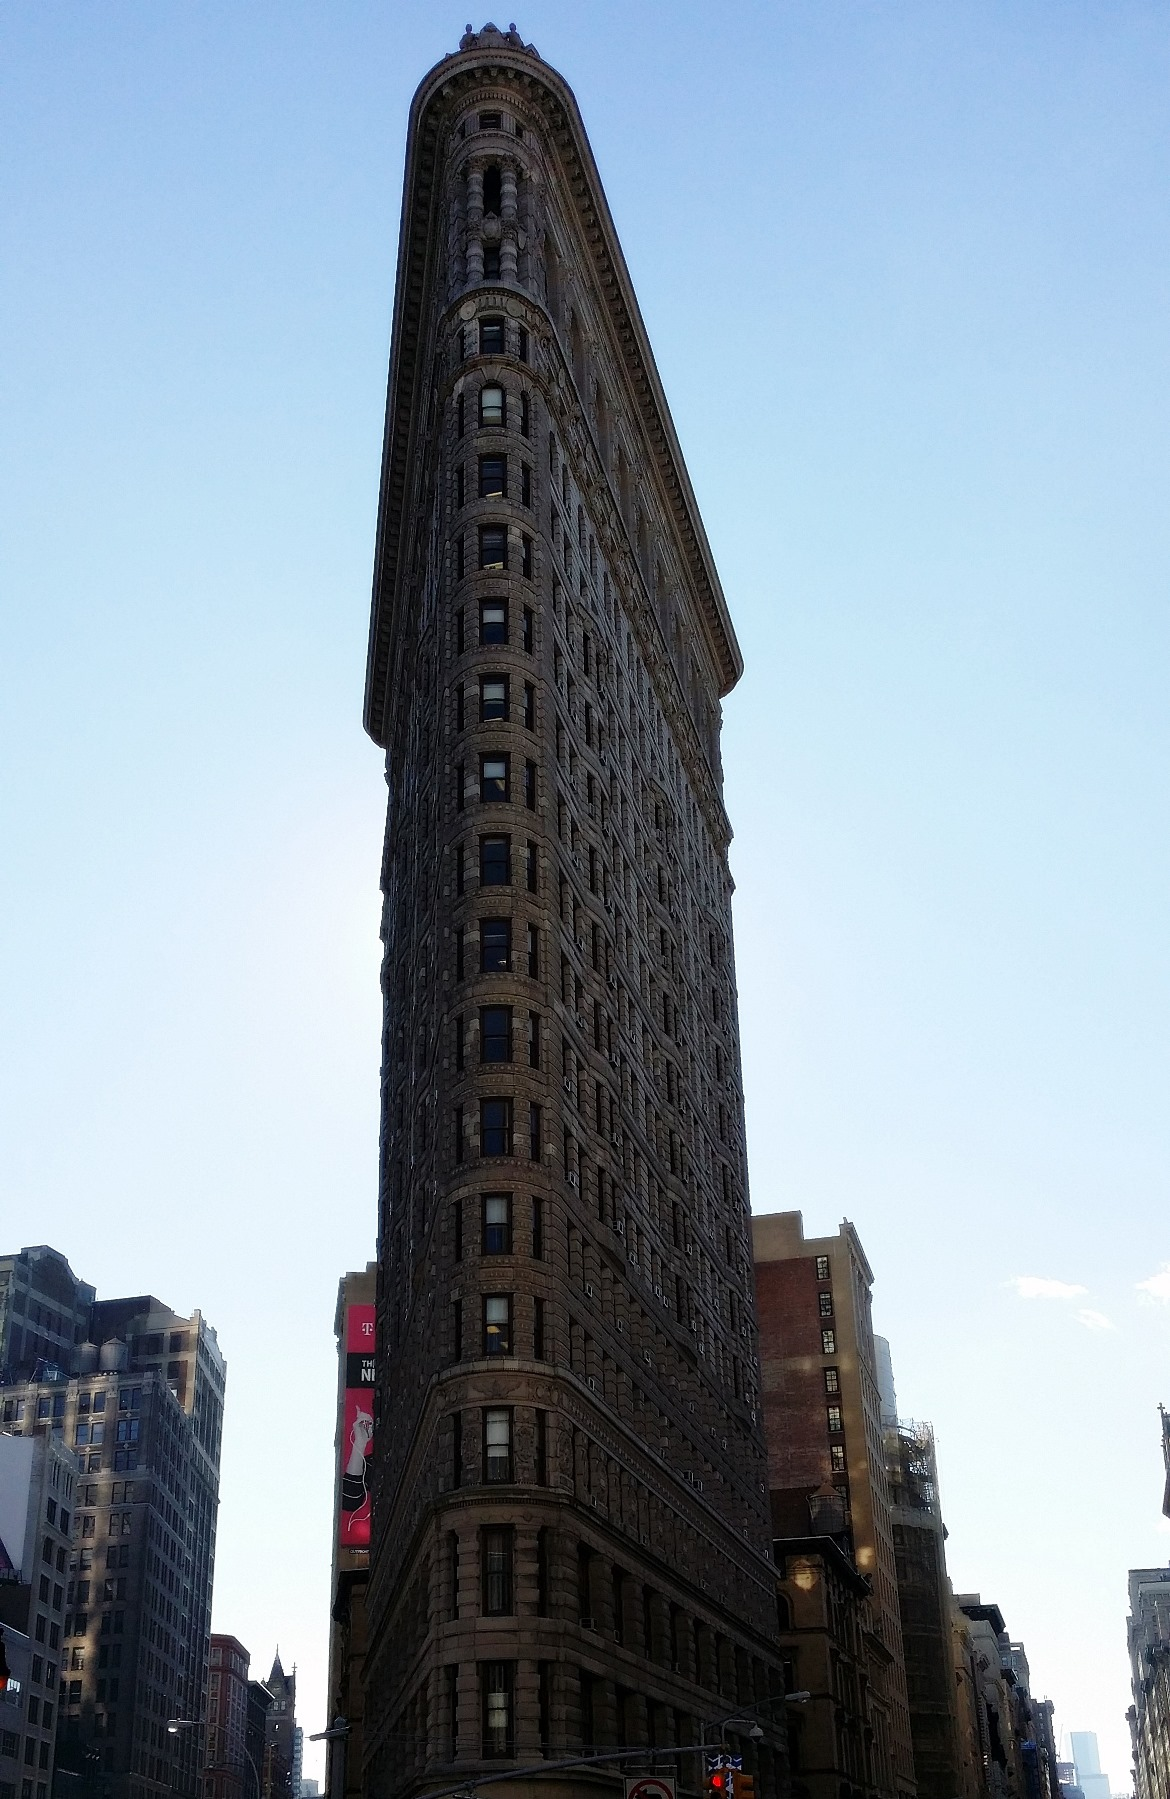 Flatiron Building - New York New York, travel blog by BeckyBecky Blogs